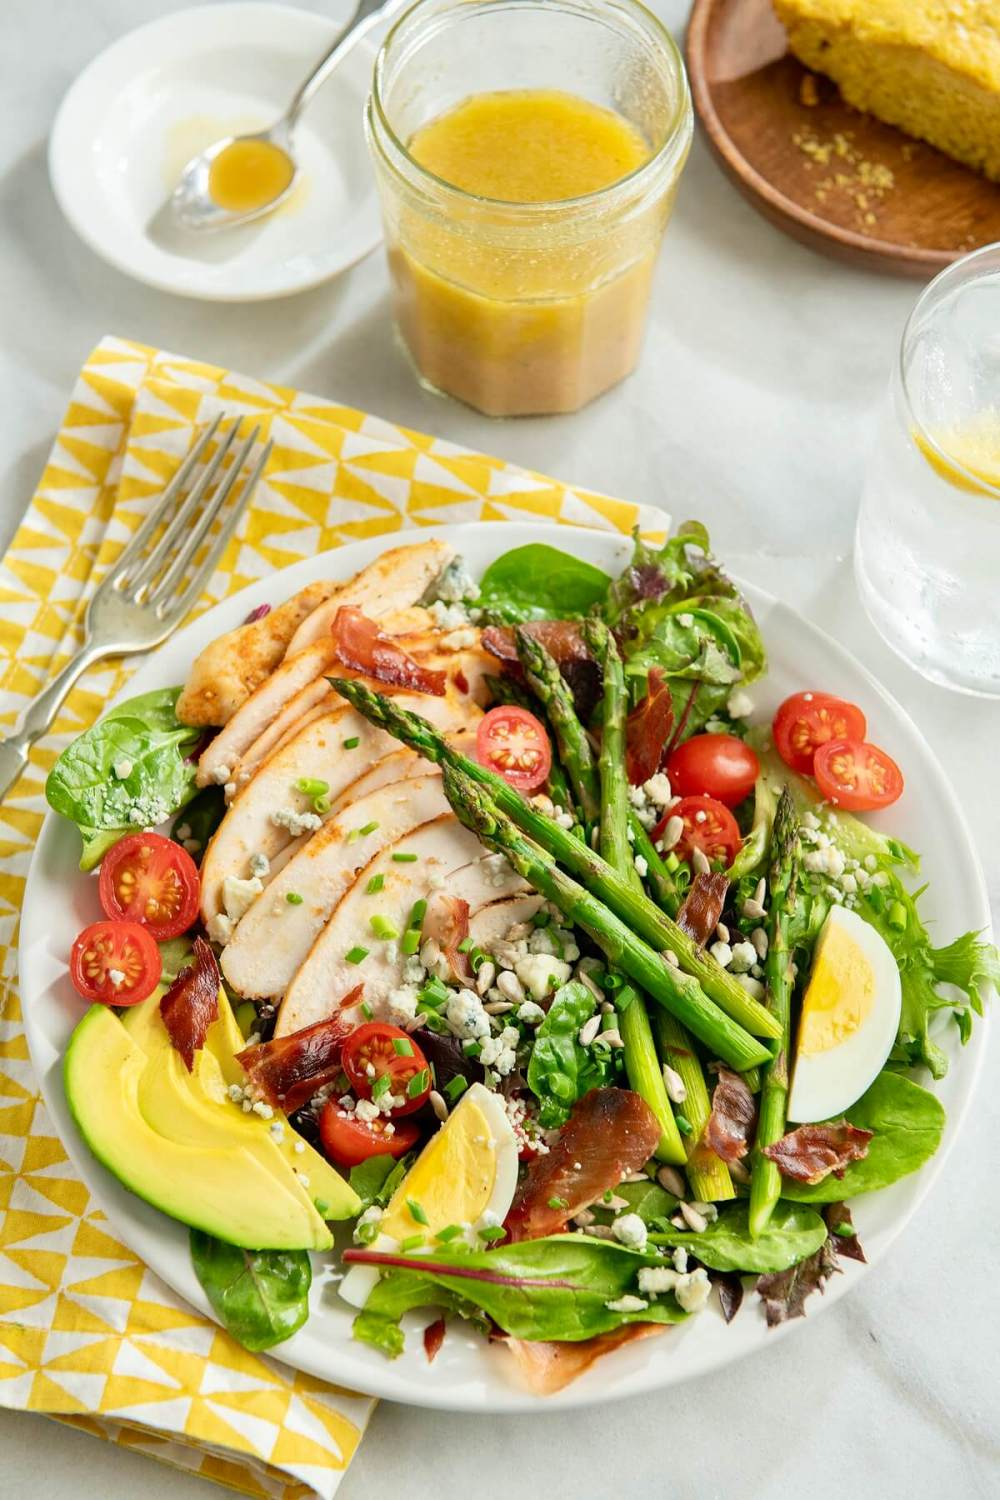 Sure, you can make a regular Cobb salad, and it will taste great. But adding asparagus ramps up the color, nutritional value, and seasonal appeal. If you don't usually have salads for dinner, this satisfying plateful might win you over. (Bonus recipes included!)